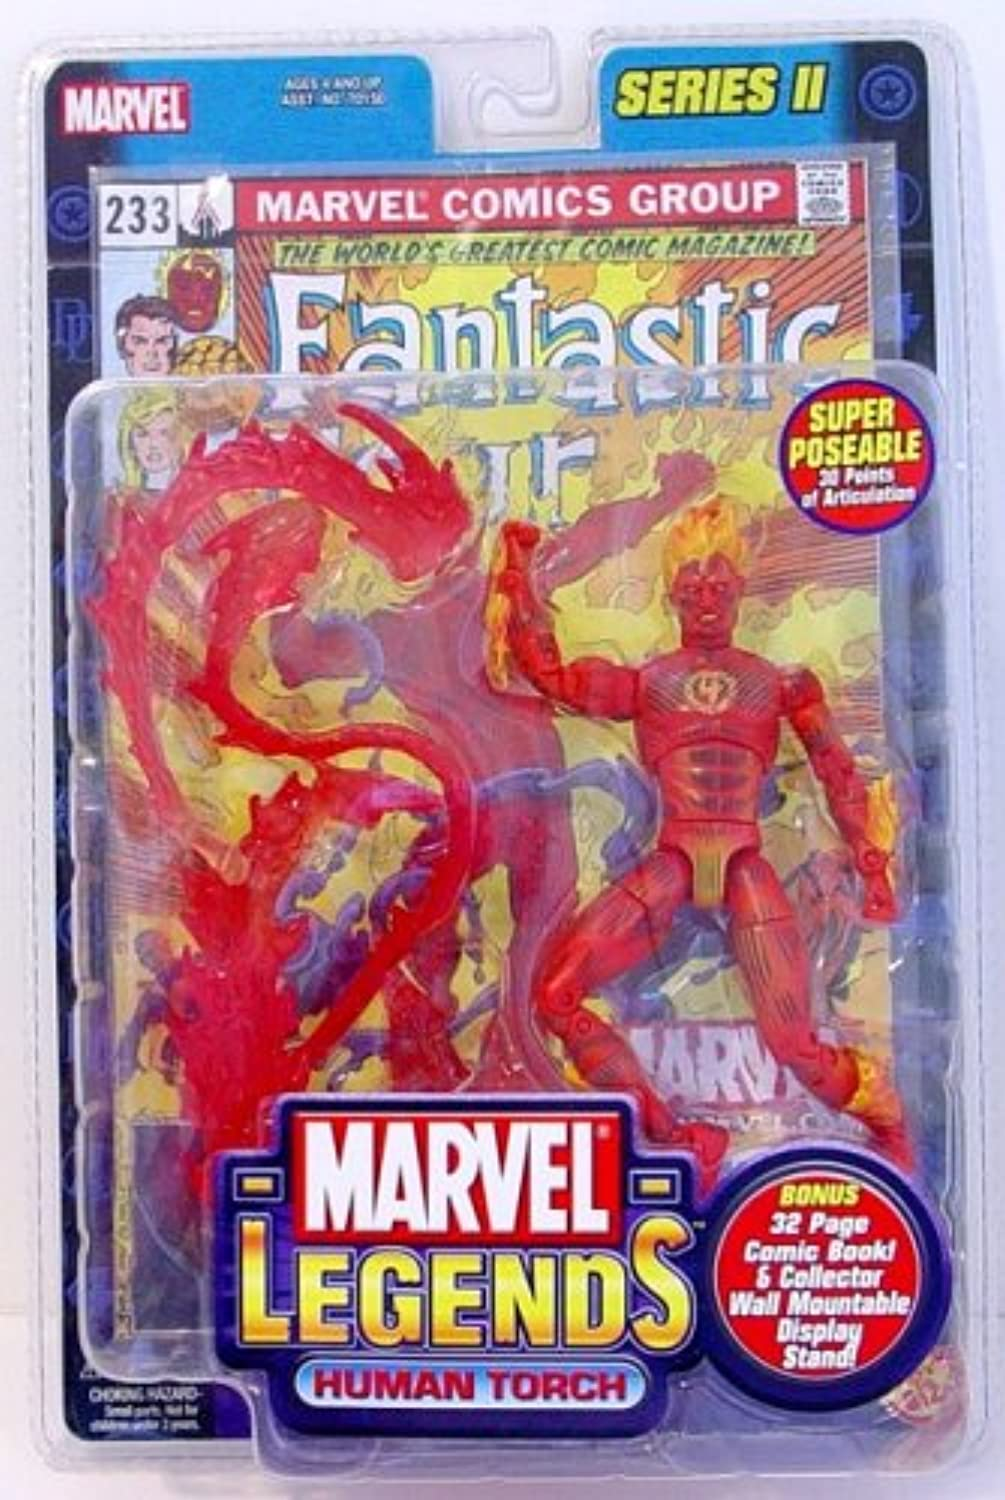 Marvel Legends Human Torch Fantastic 4 Variant by Marvel